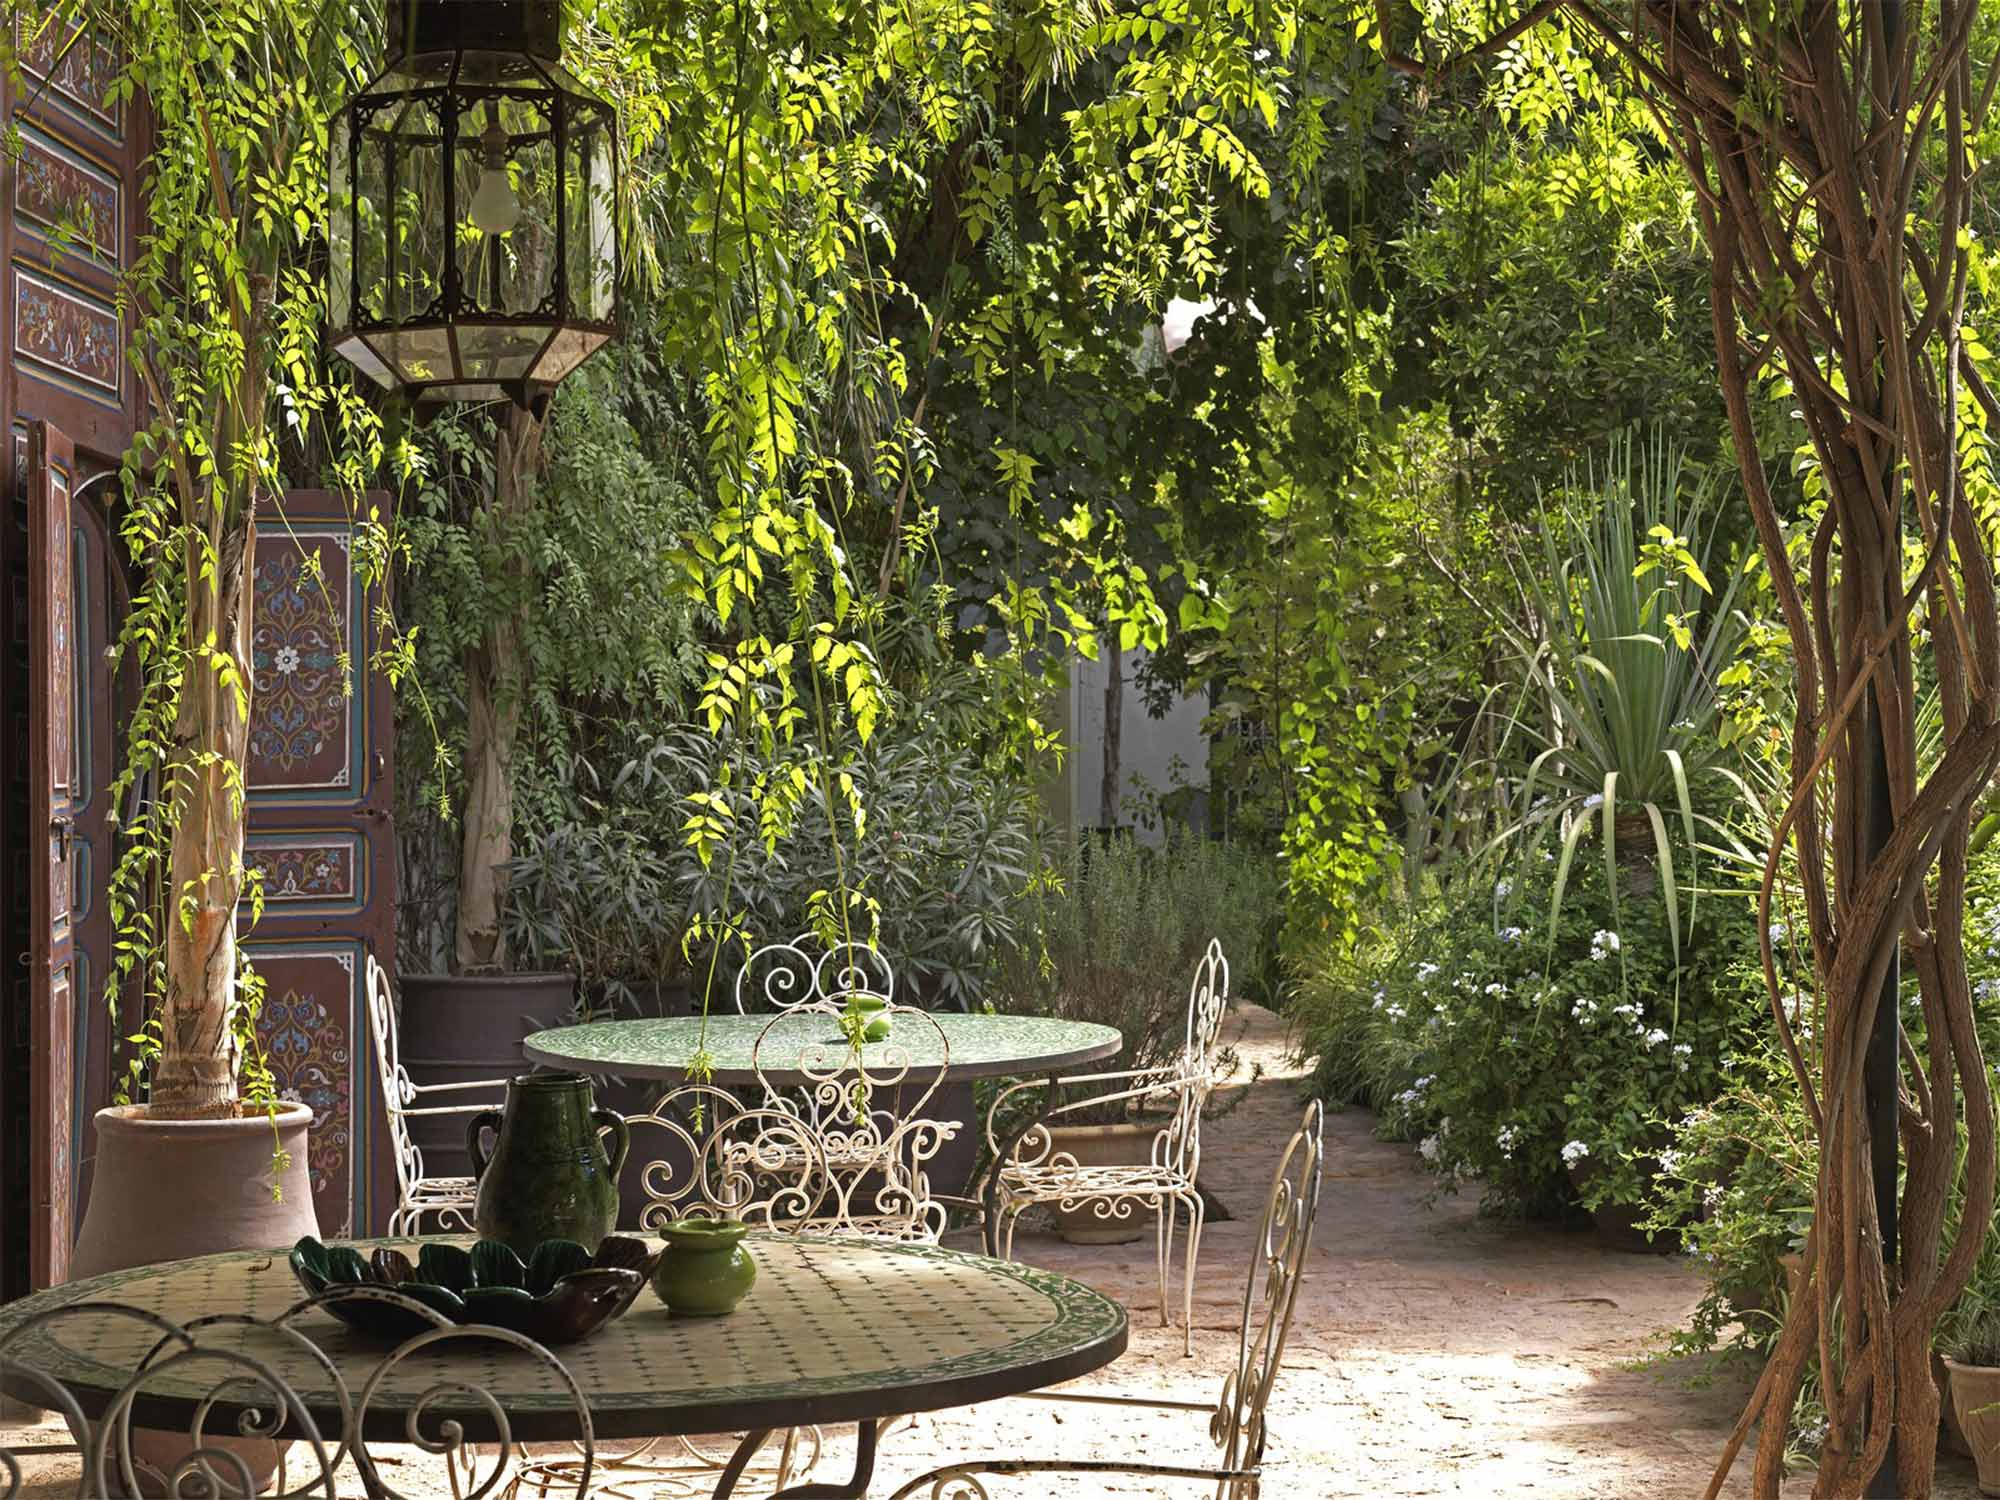 Cool Courtyard Ideas for Your Outdoor Area - realestate.com.au on Courtyard Patio Ideas id=57637